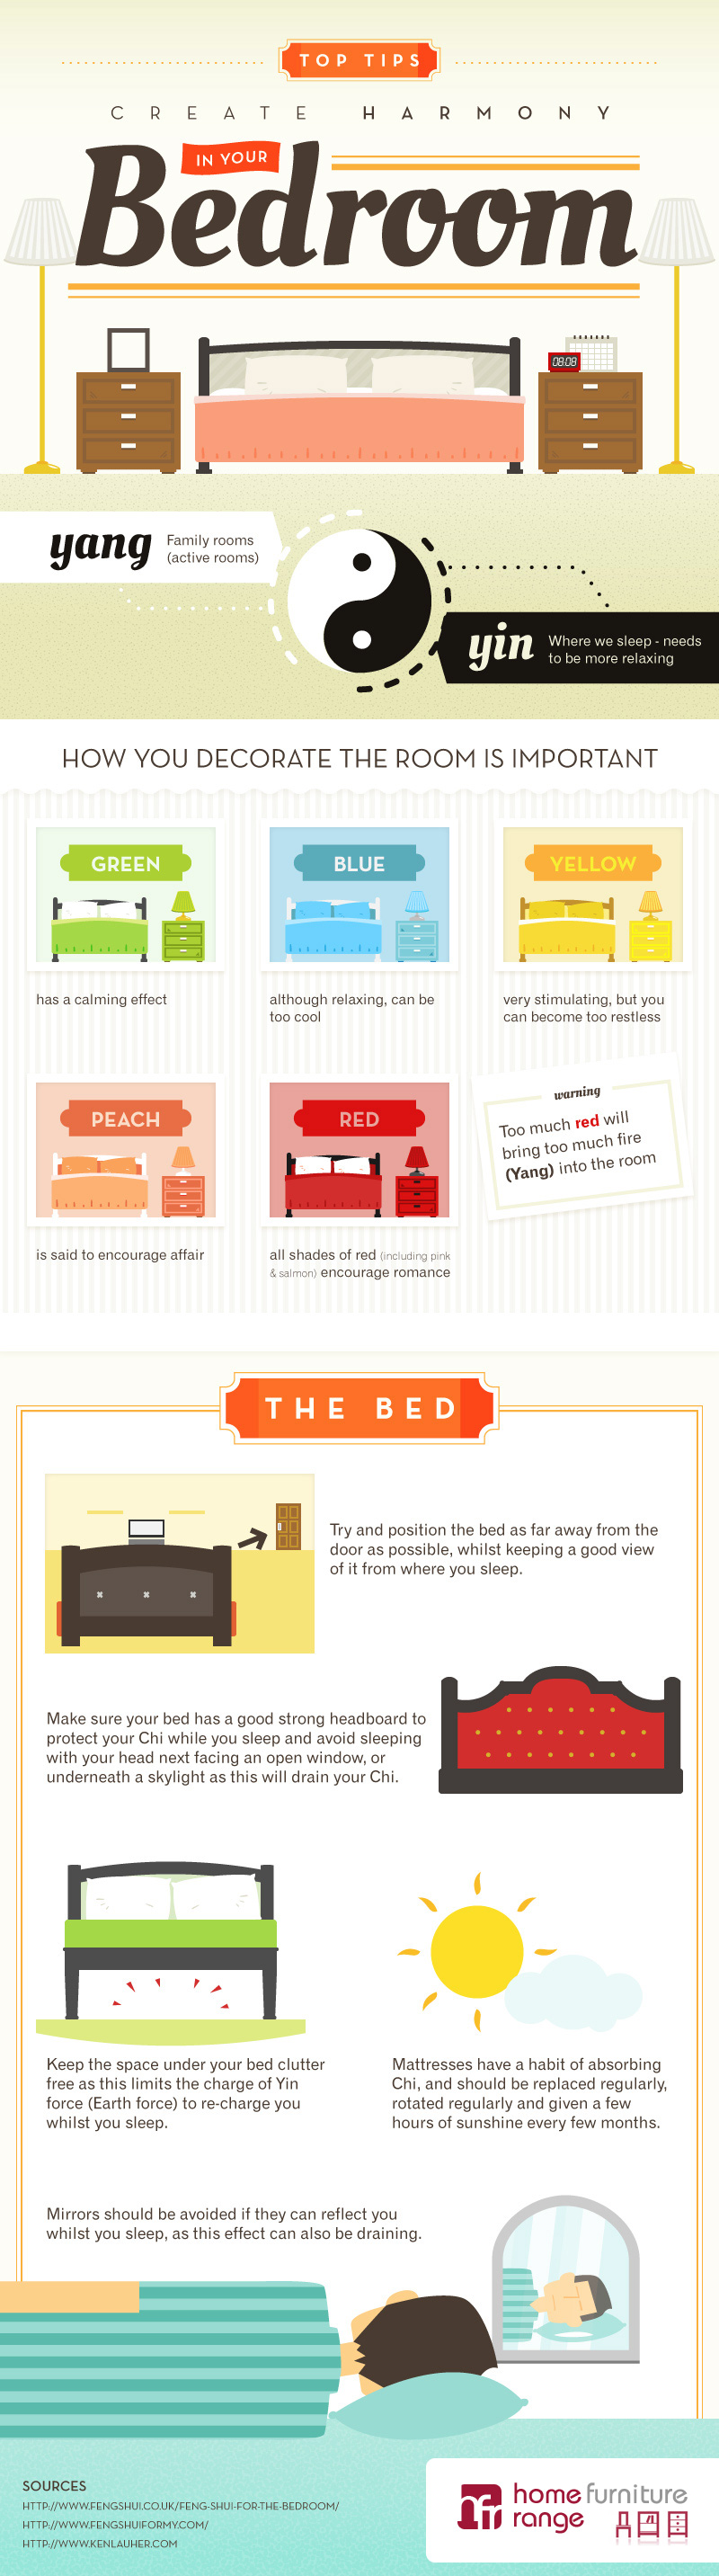 how to feng shui your bedroom visually bedroom furniture feng shui